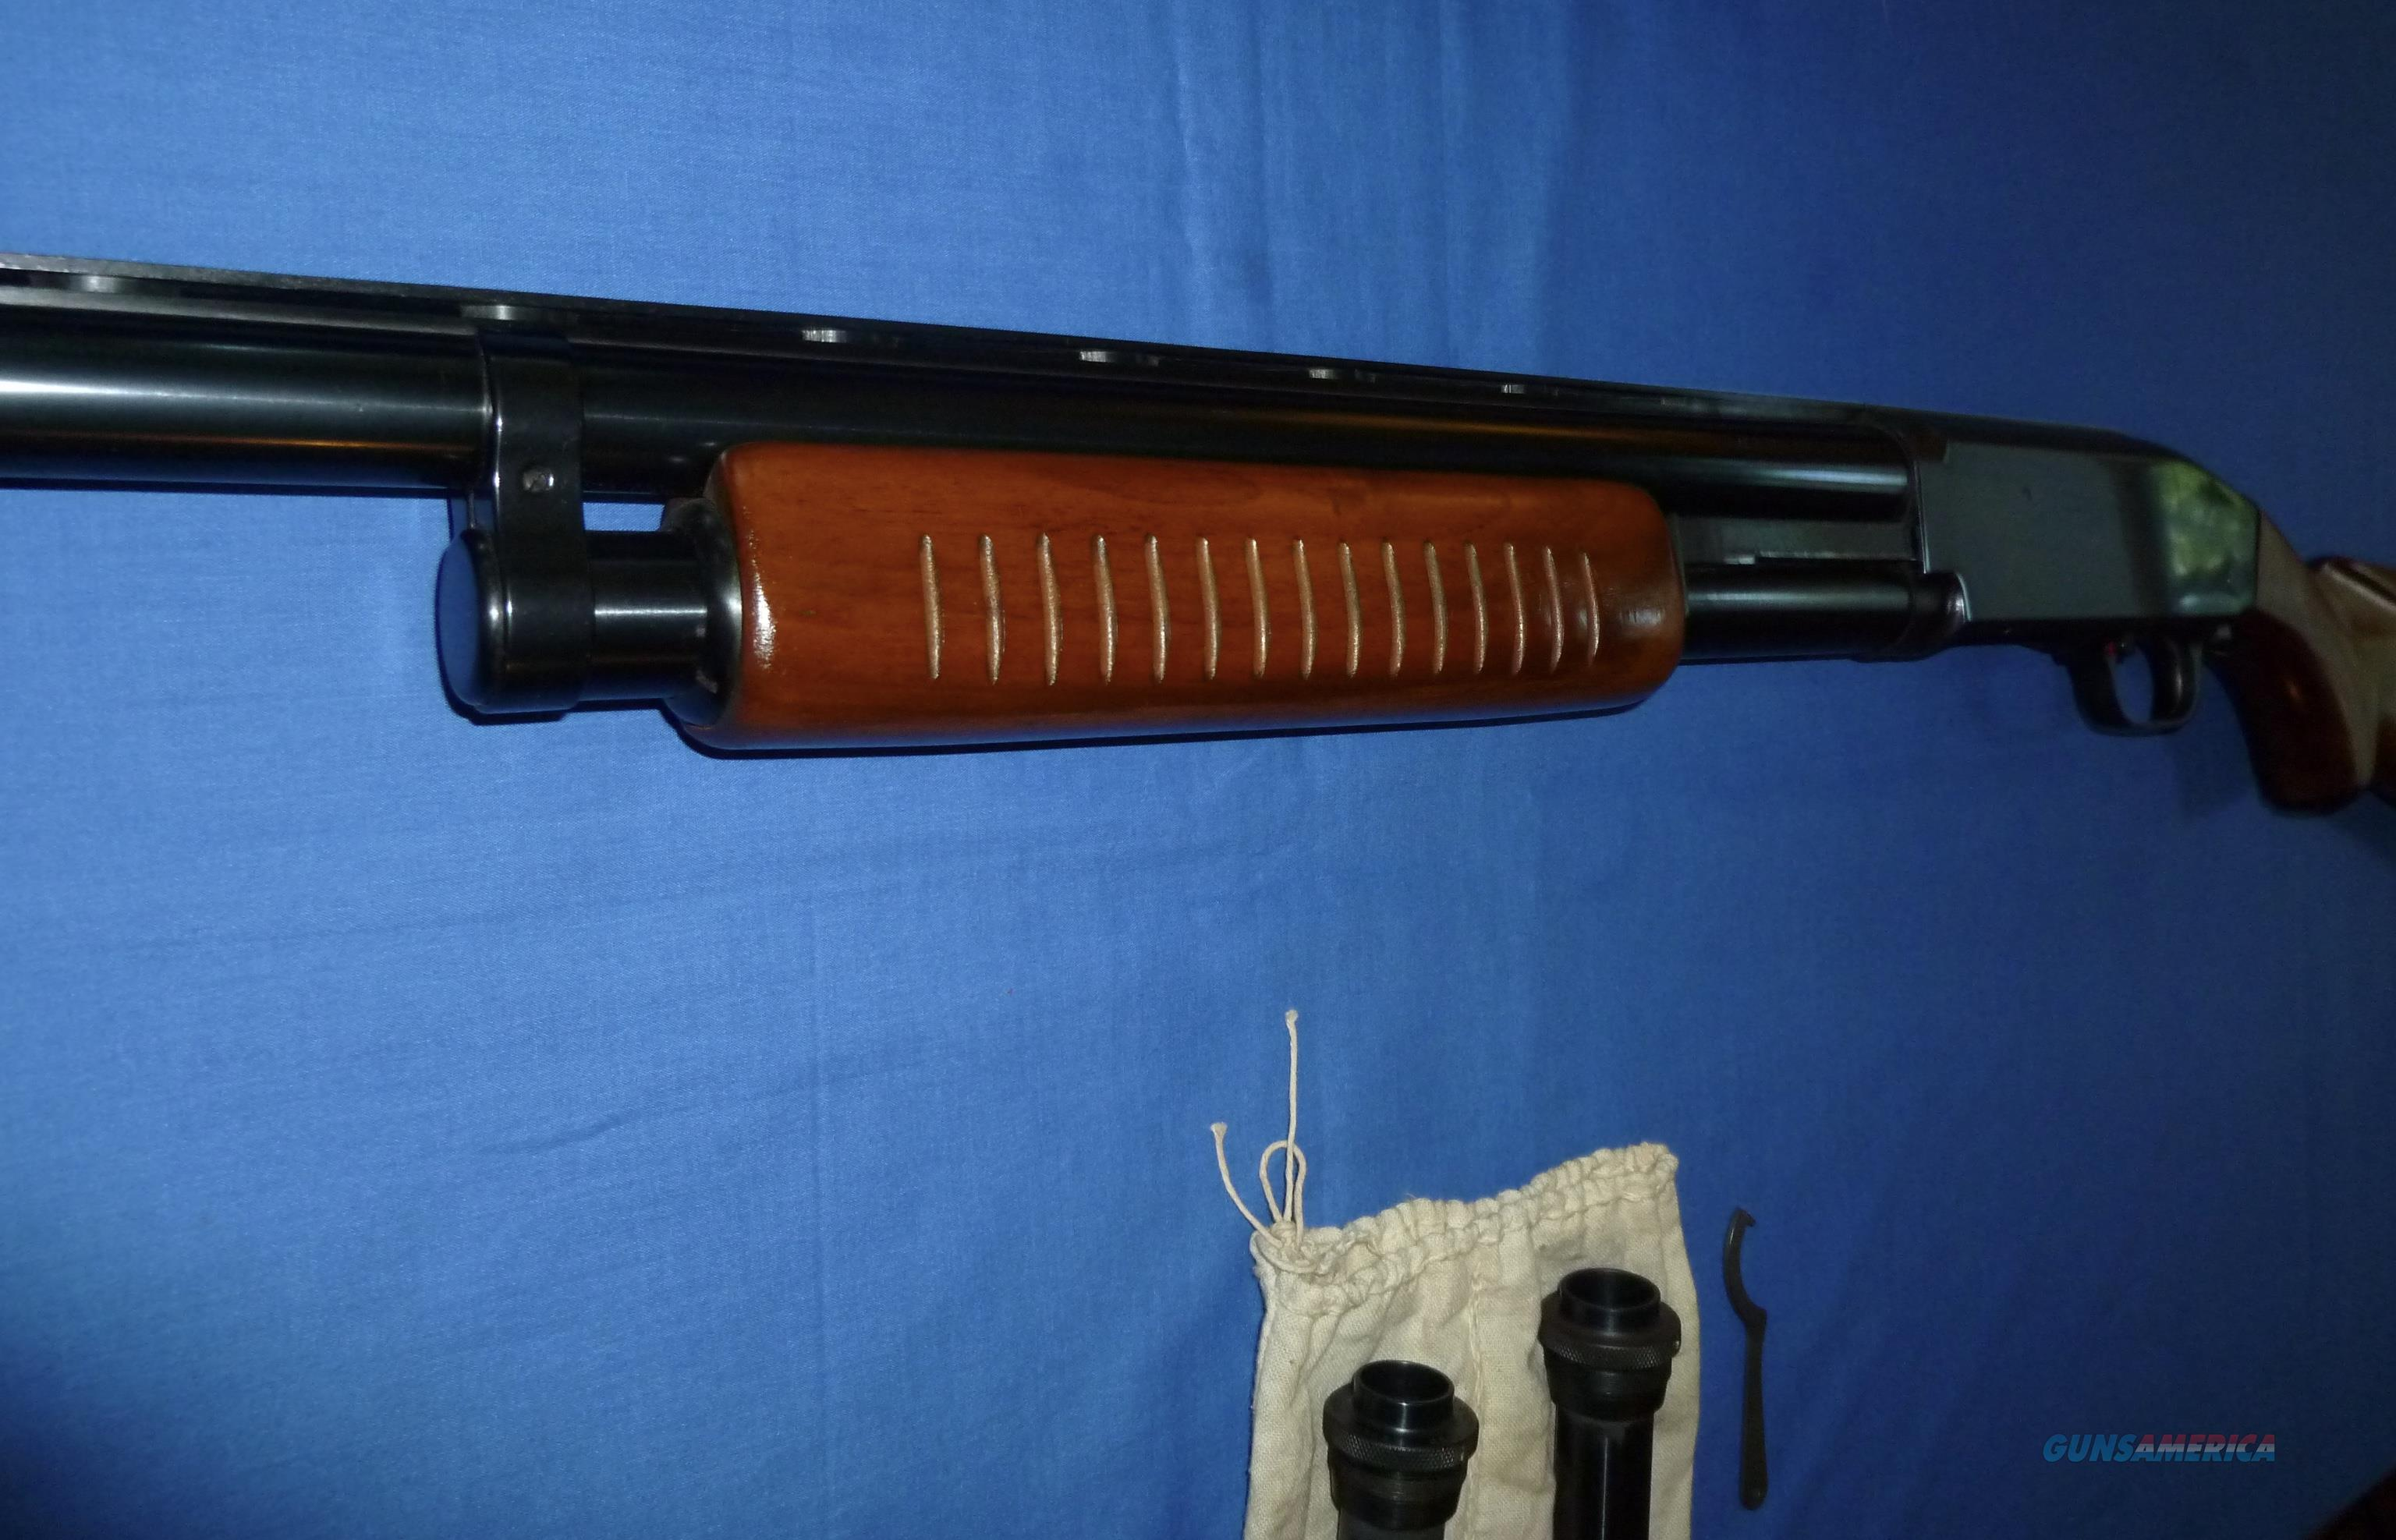 J.C. HIGGINS/HIGH STANDARD MODEL 20 12 GAUGE PUMP SHOTGUN on